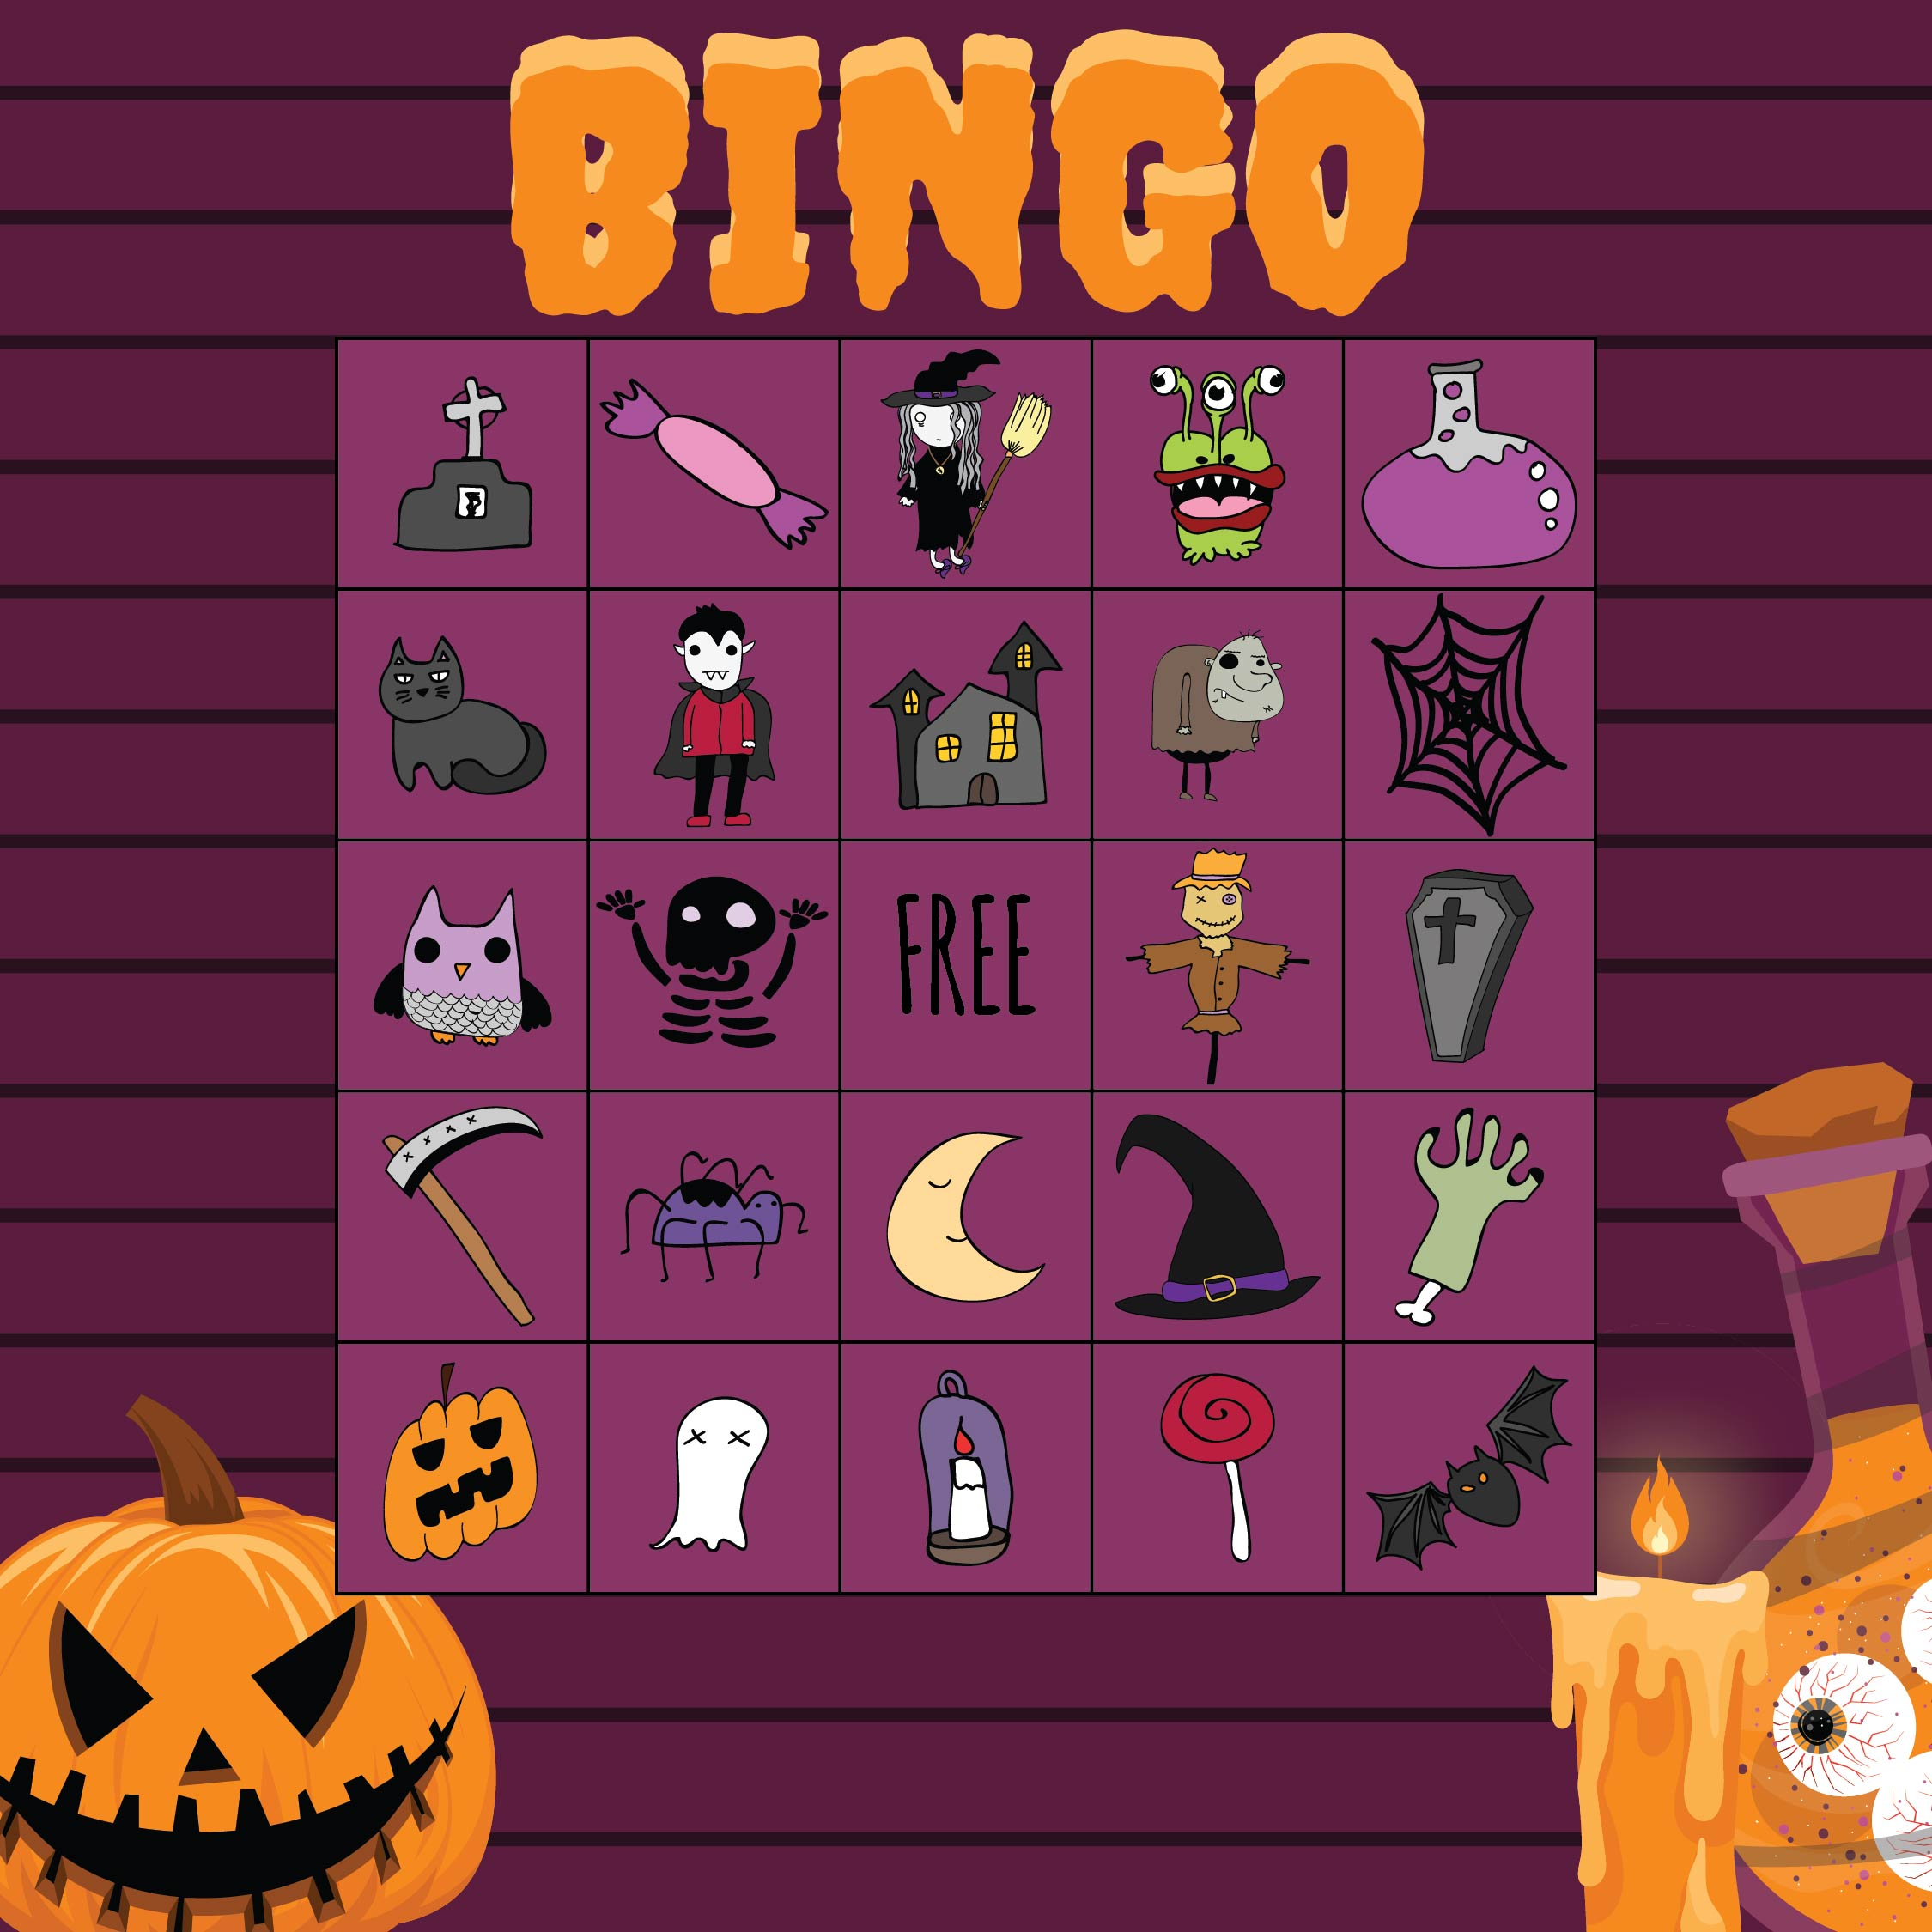 6 Images of Free Printable Halloween Bingo Game